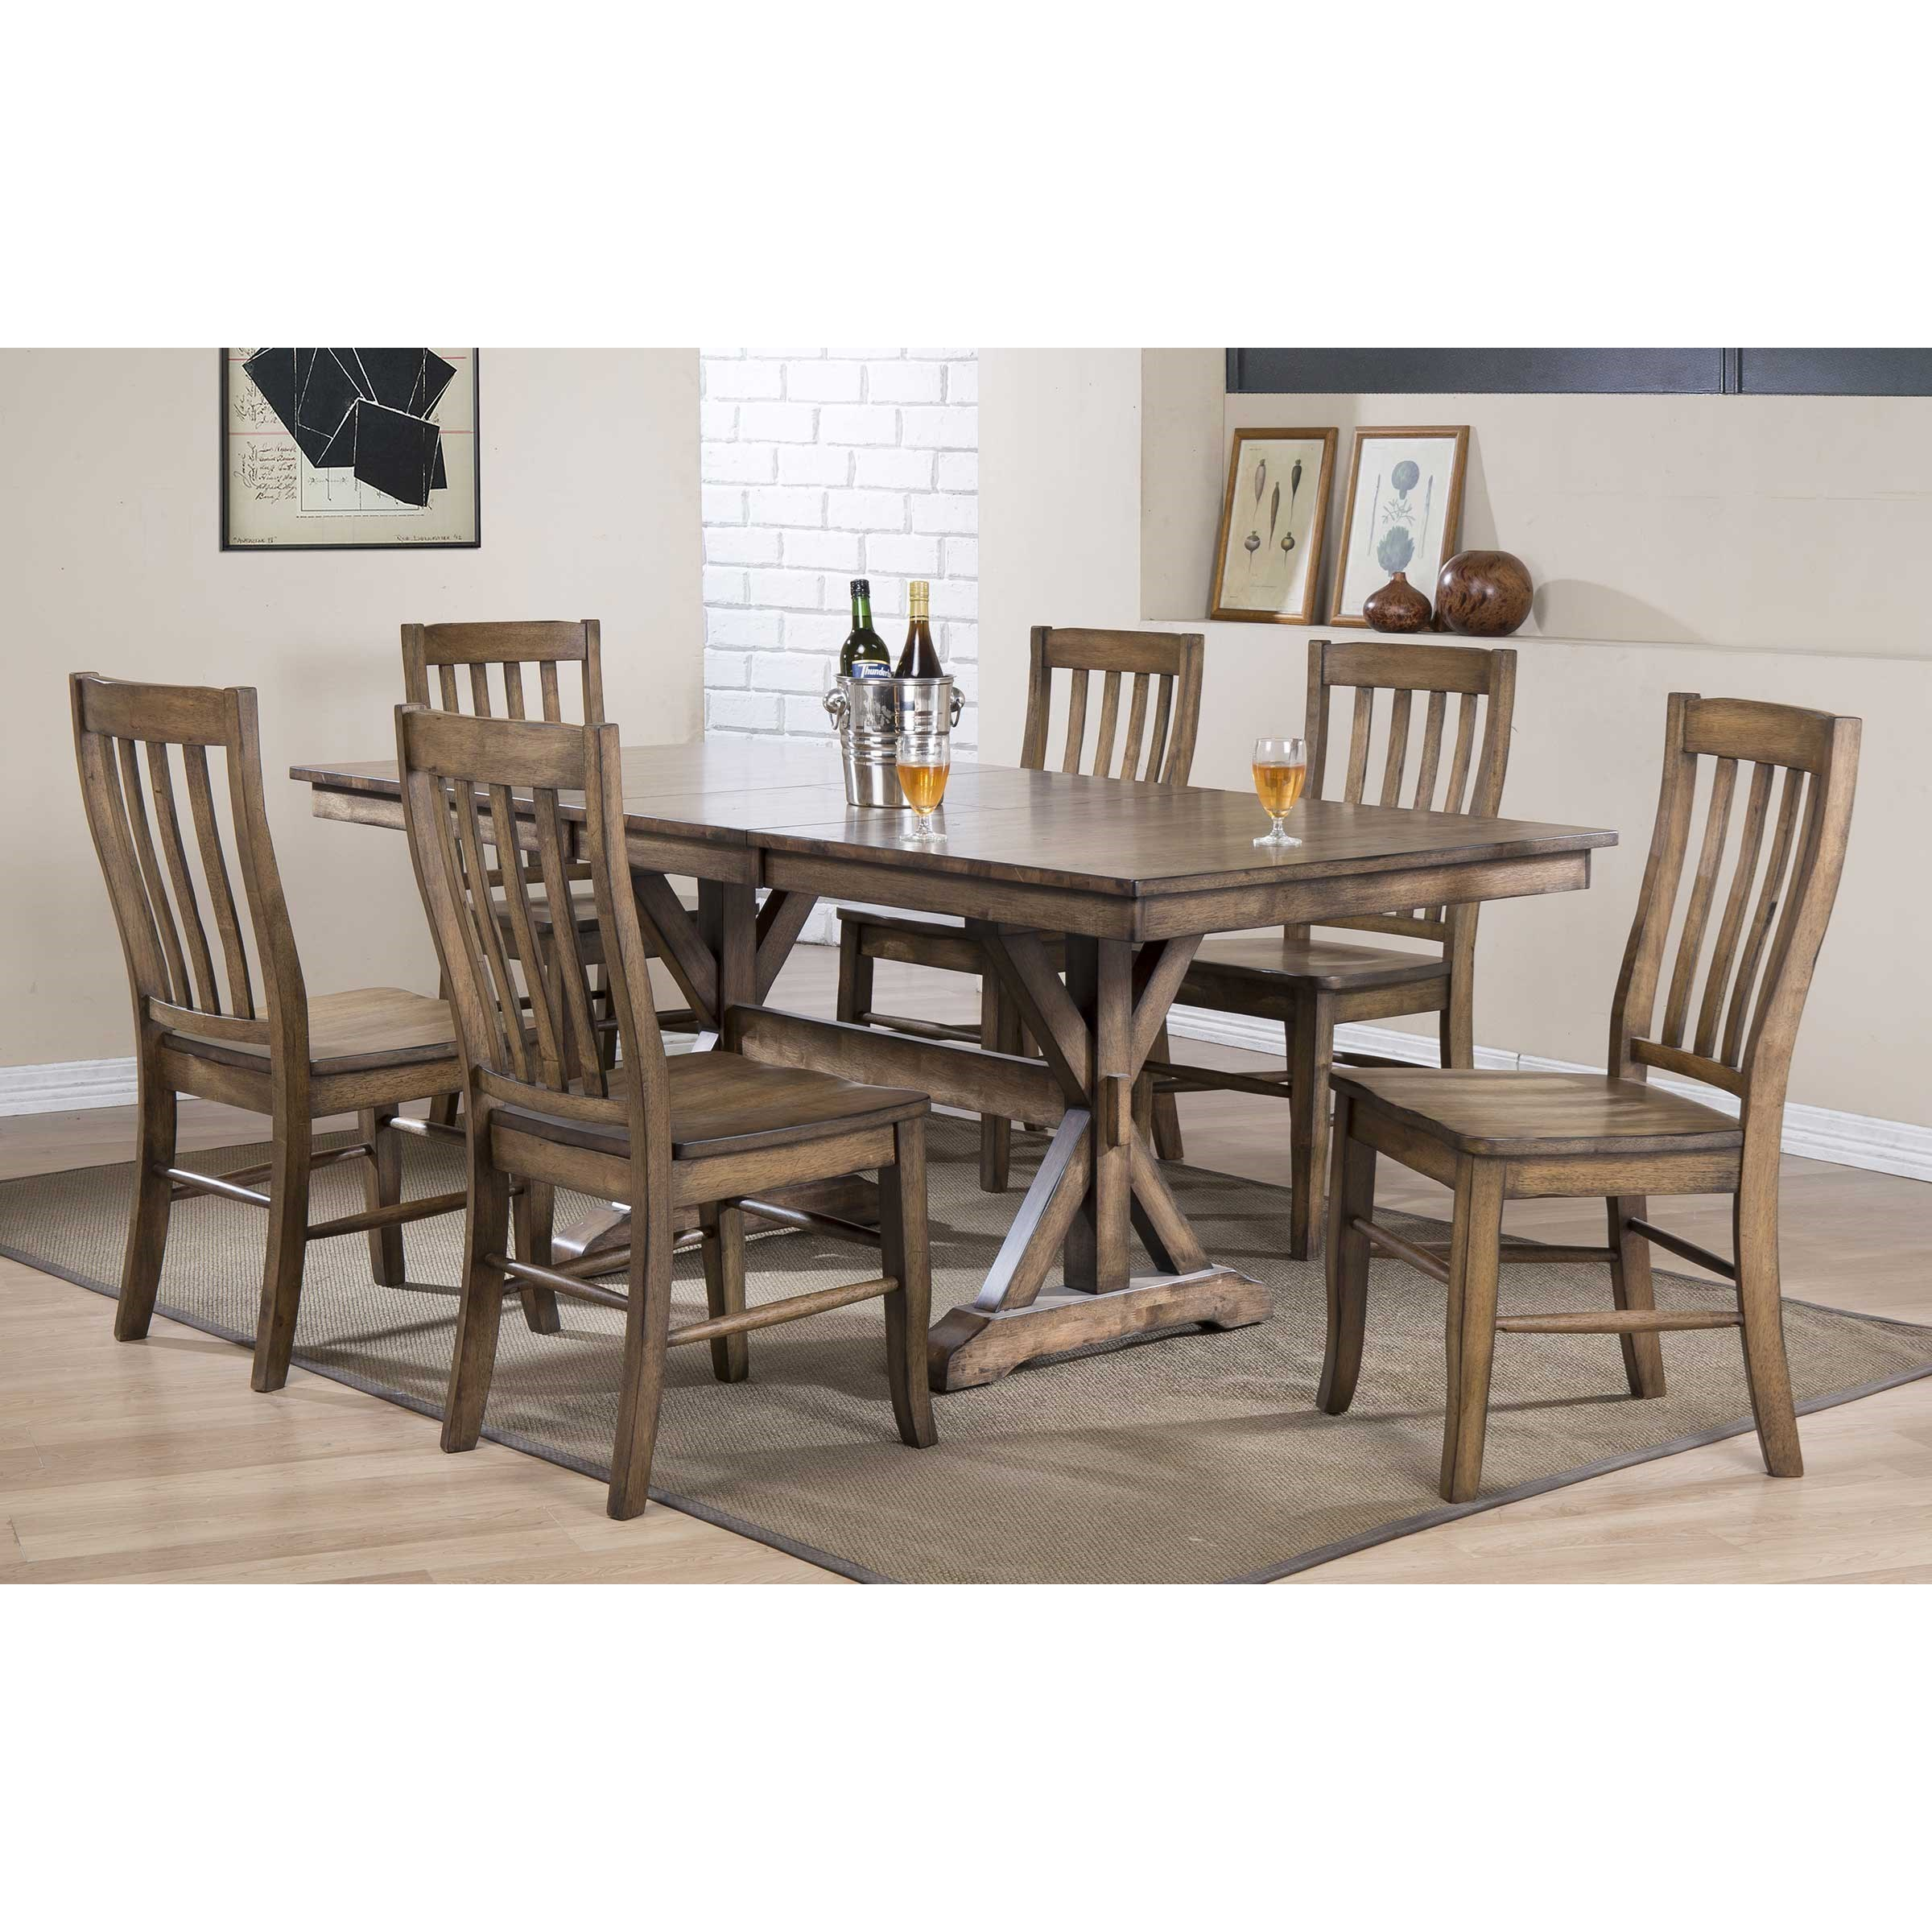 Carmel Dining Table by Winners Only at Crowley Furniture & Mattress